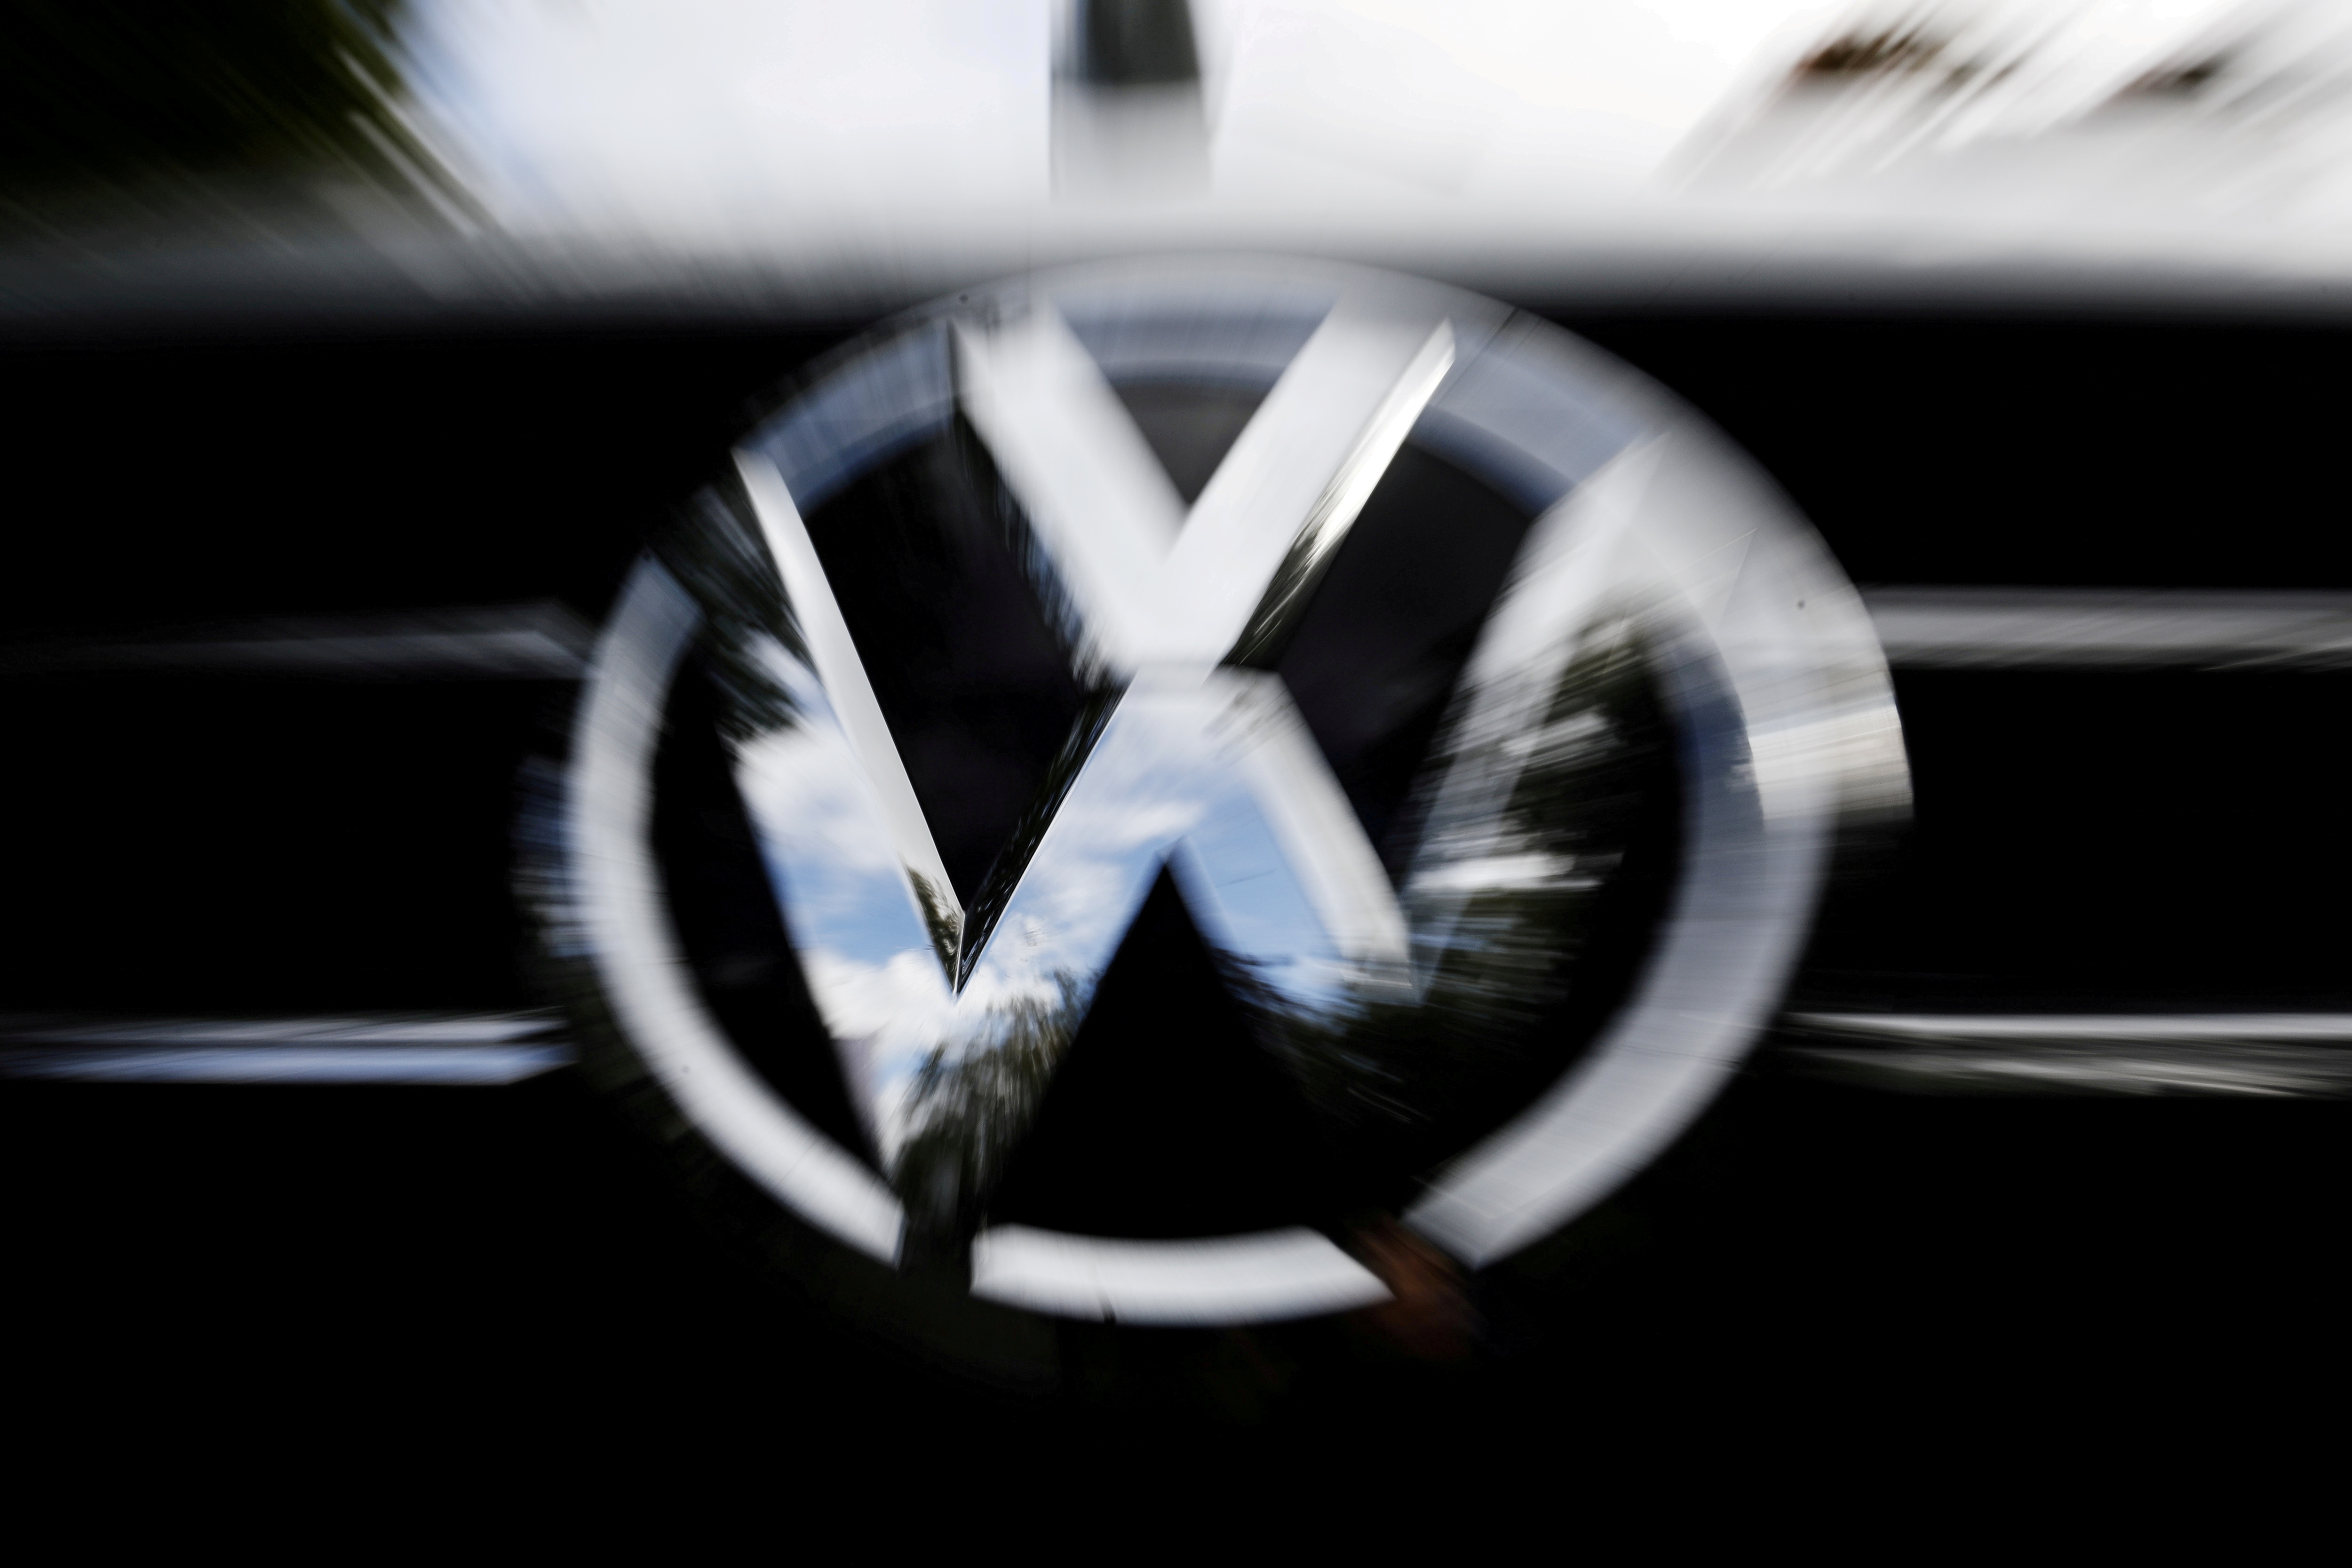 The VW logo is seen at the site of the first hearing against VW over the diesel emissions cheating scandal, at the Higher Regional Court in Braunschweig, Germany, September 30, 2019.     REUTERS/Michele Tantussi/